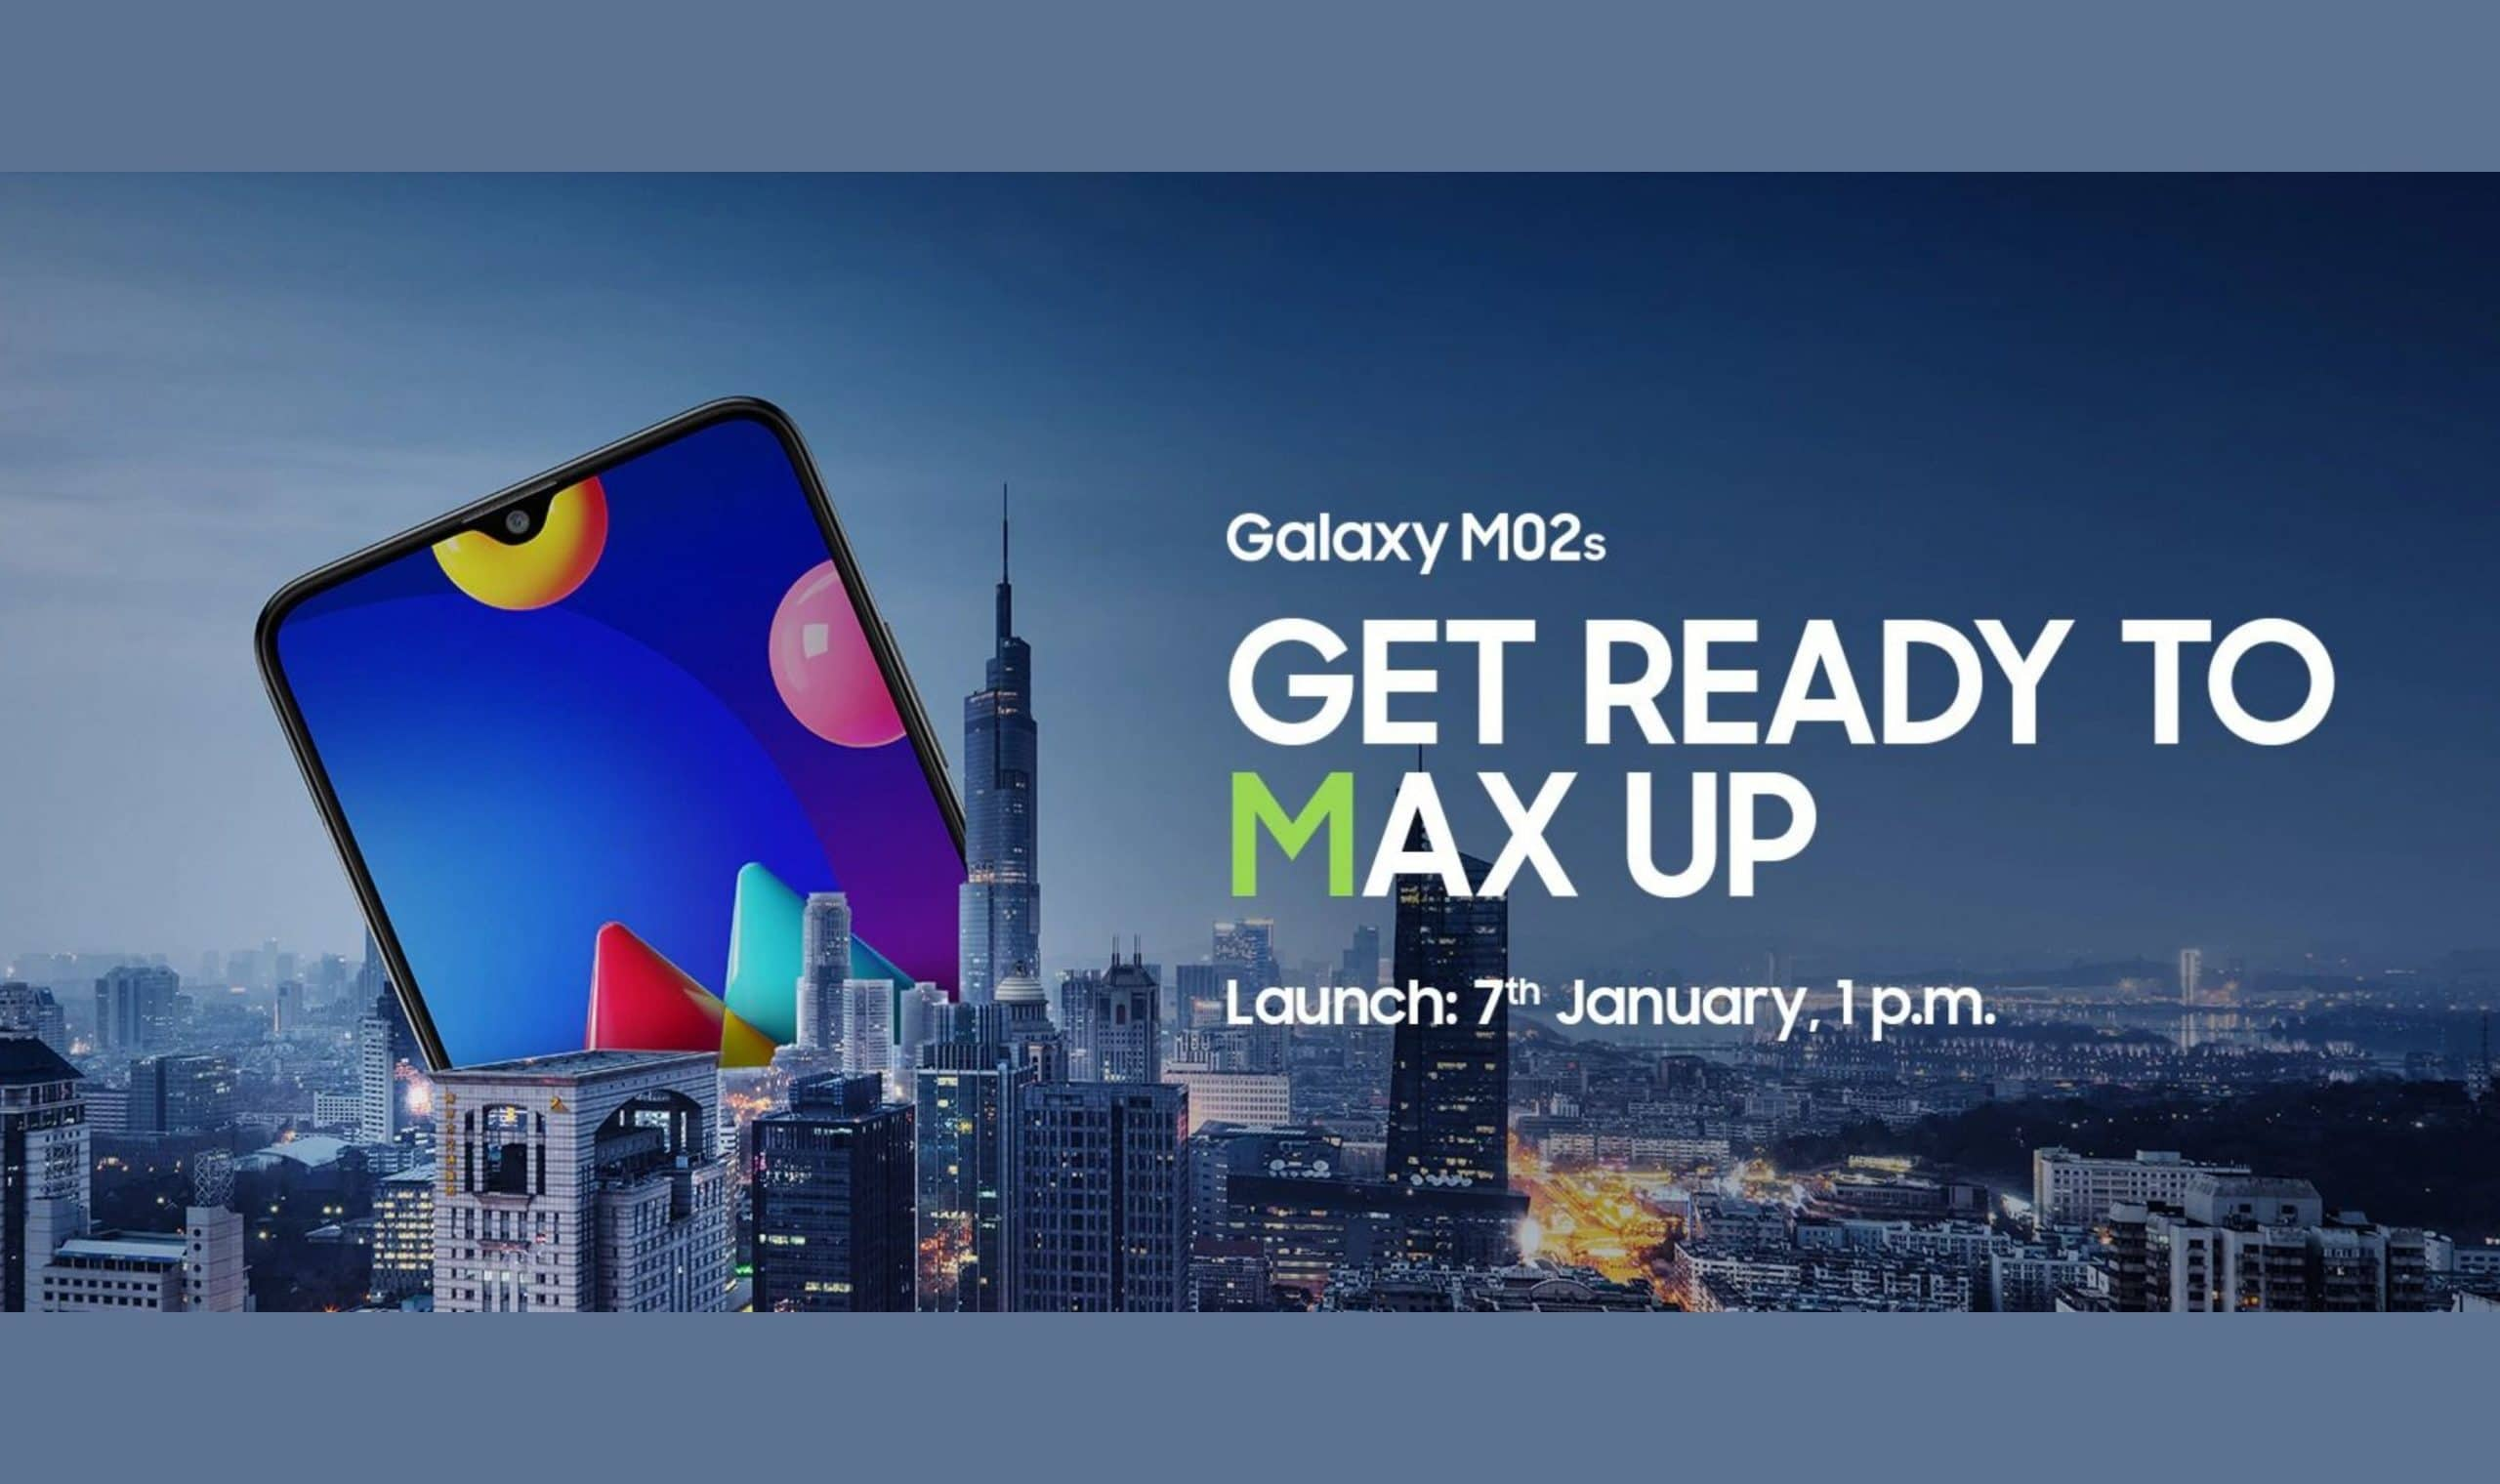 Galaxy M02s specs and price revealed ahead of January 7 India launch